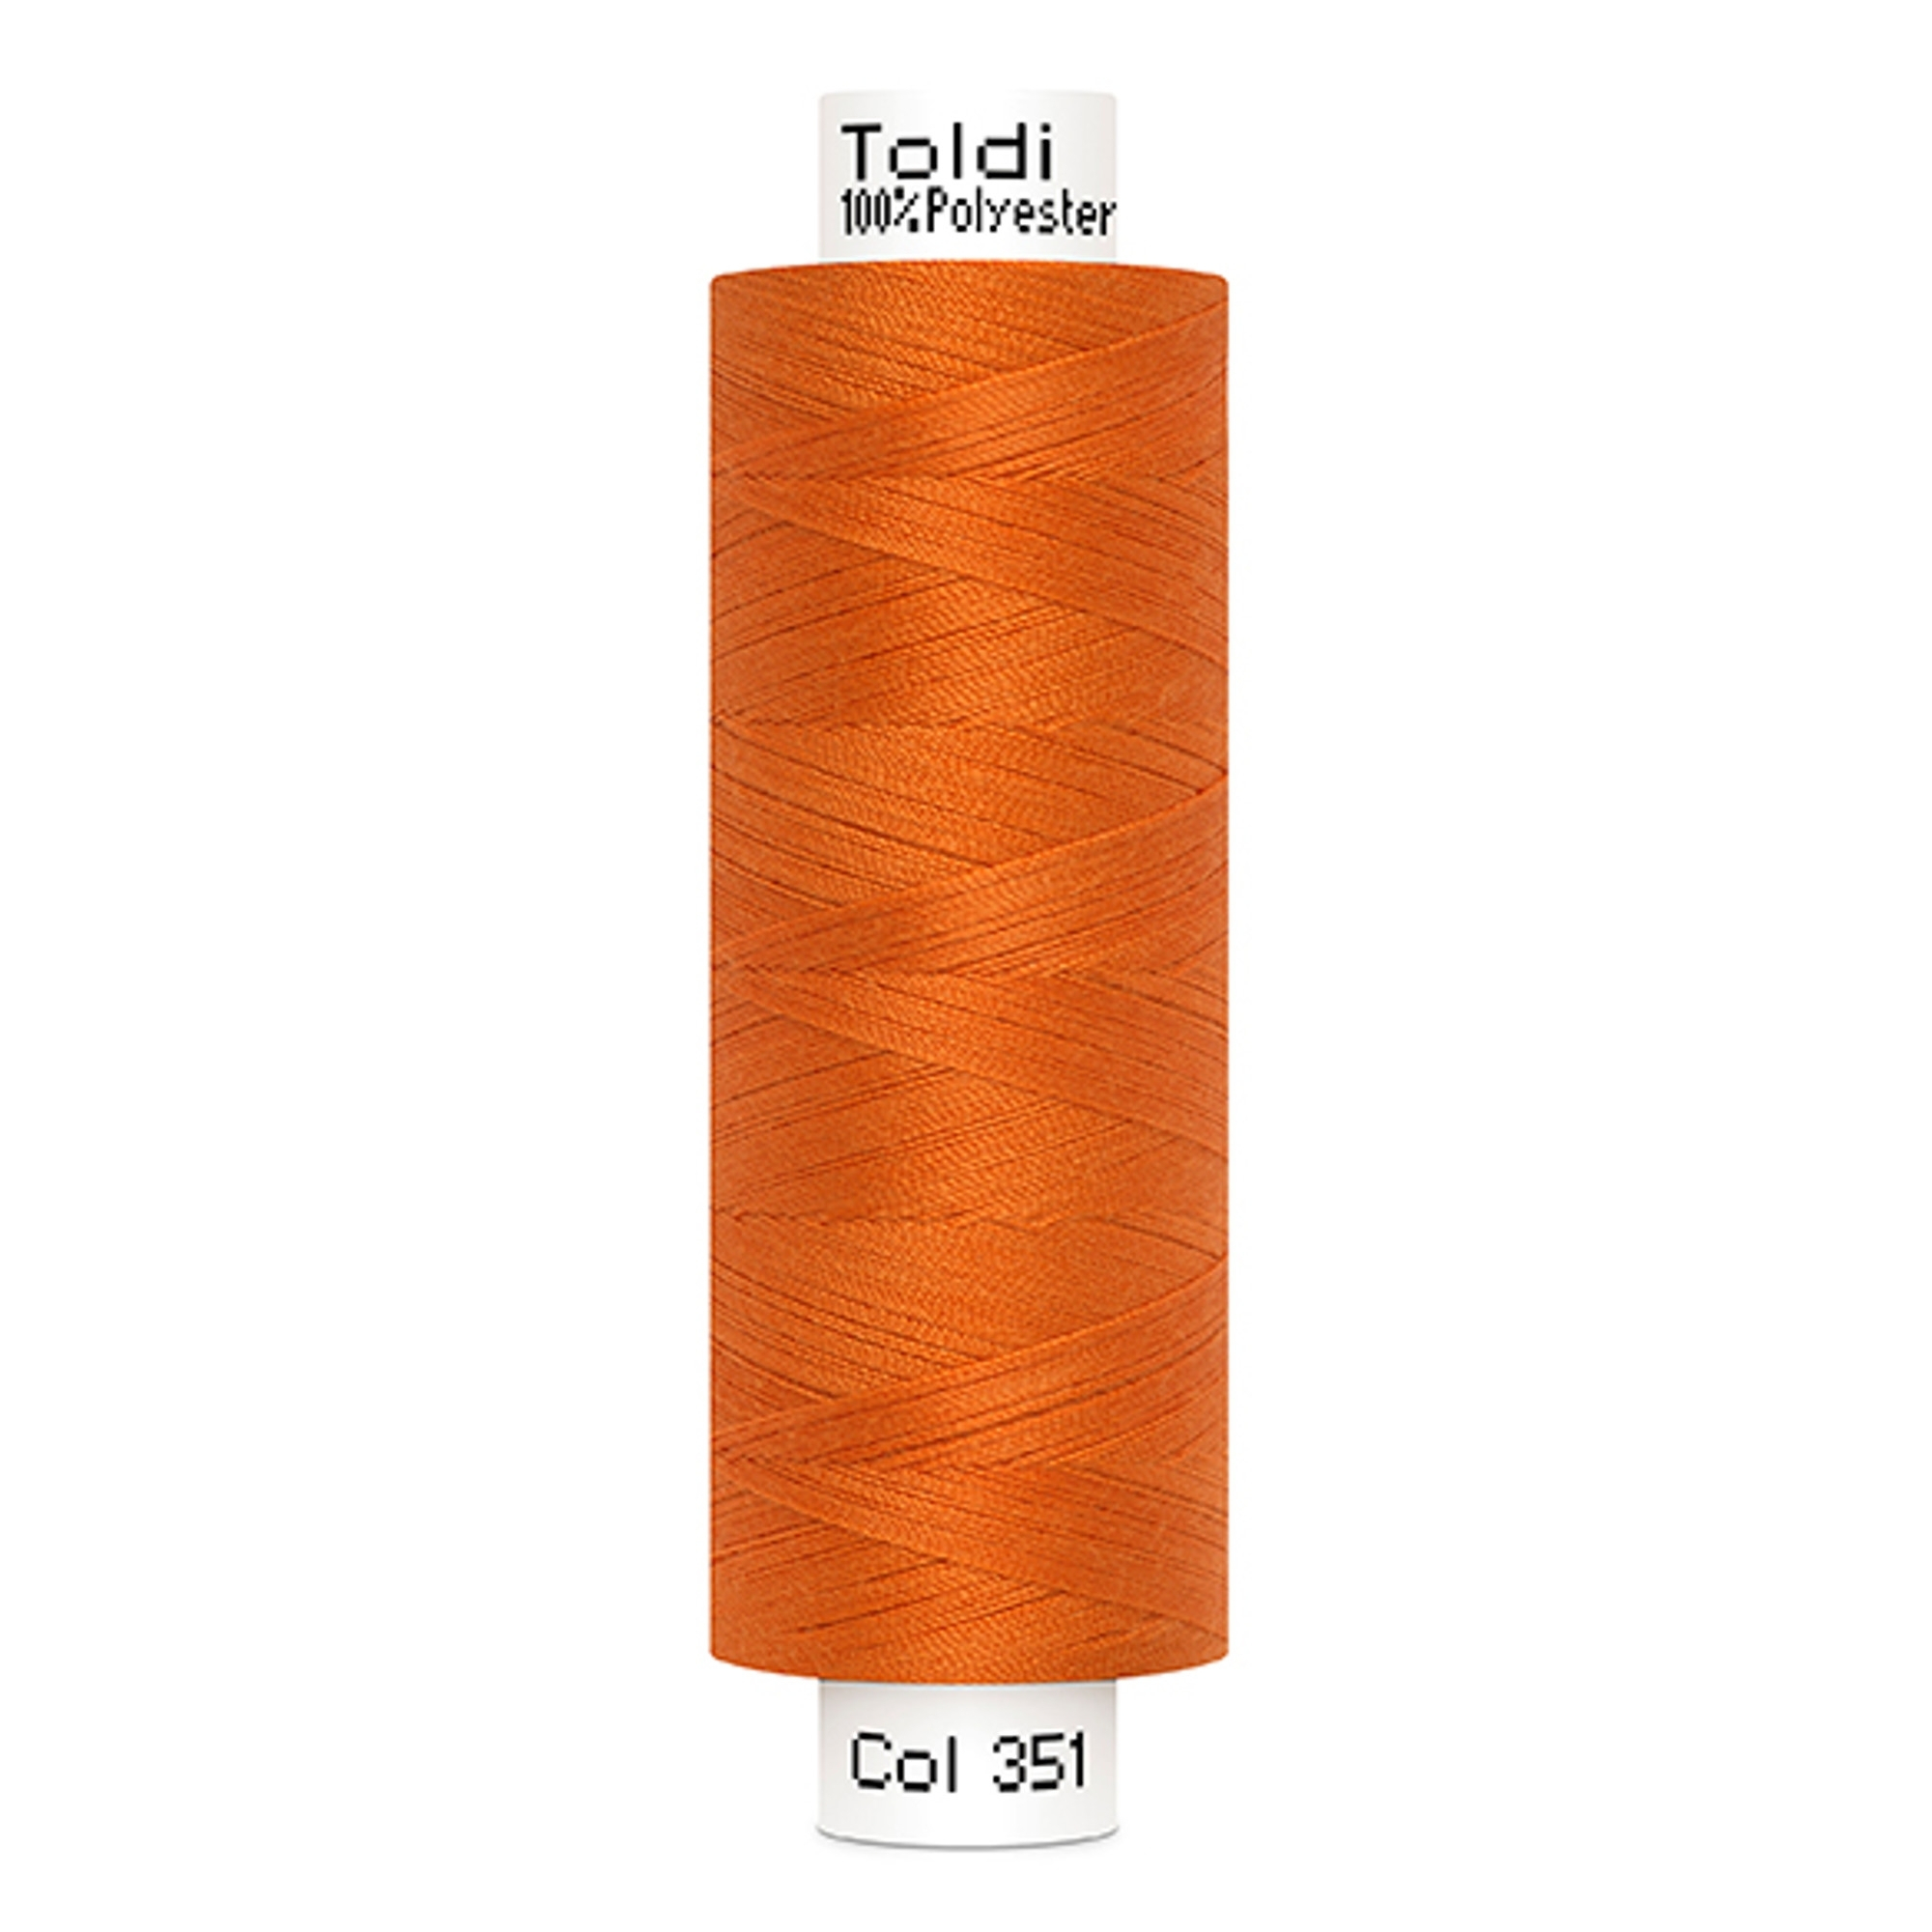 Gütermann Toldi garen, 500 m oranje | 707589-351 | orange